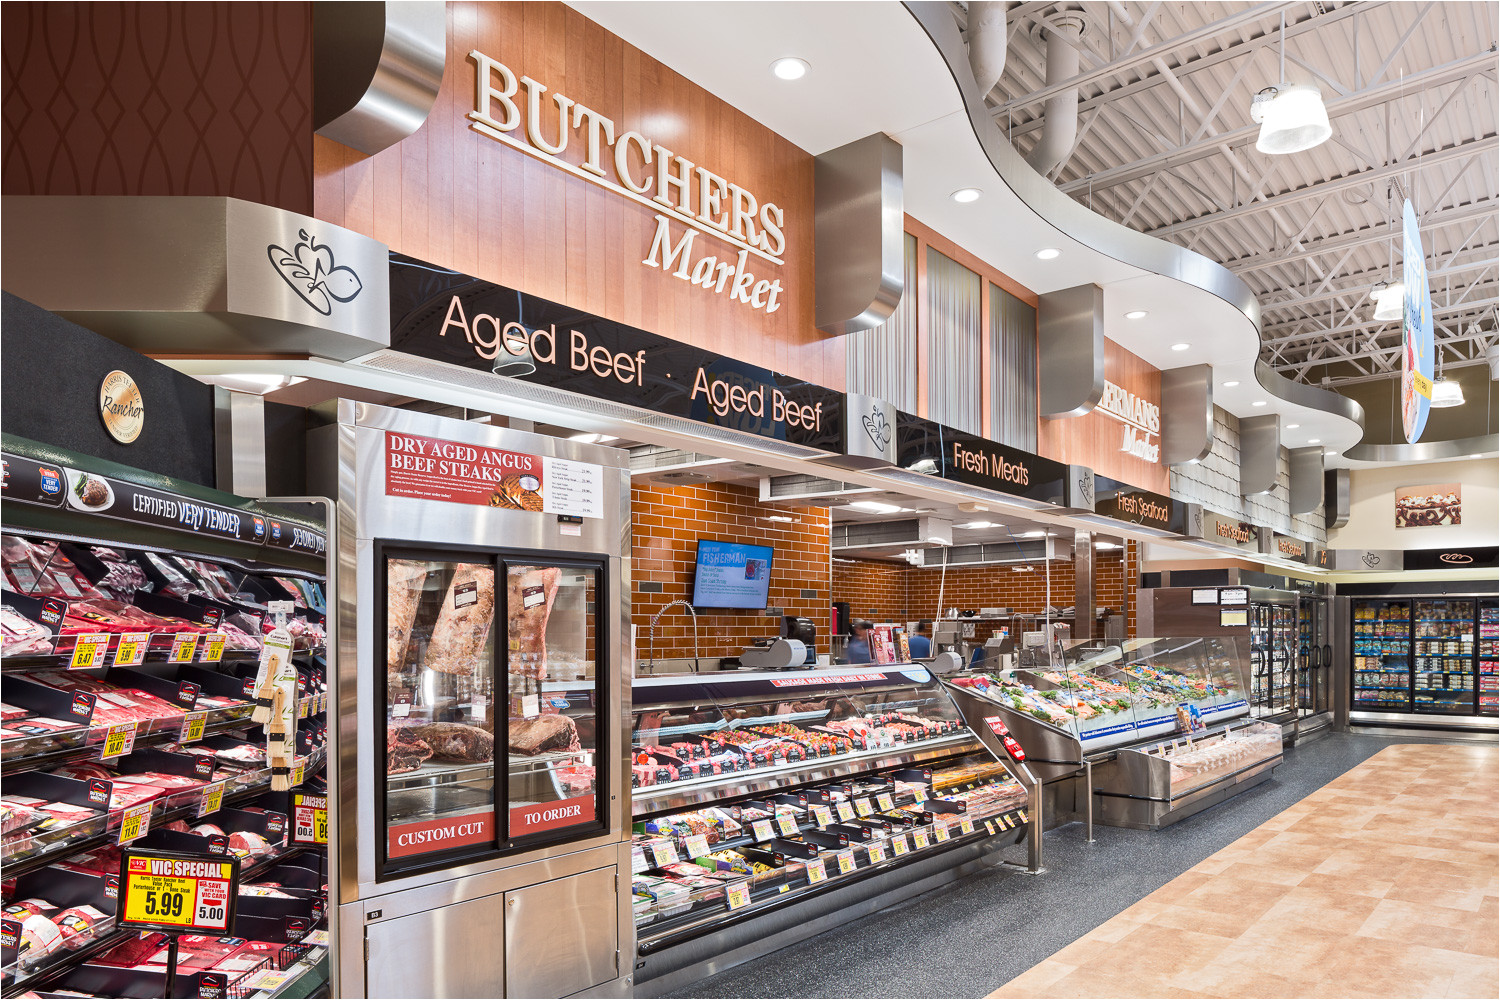 the greenville sc store features some beautiful interior and exterior changes from other harris teeter stores thanks to the creative folks at harris teeter